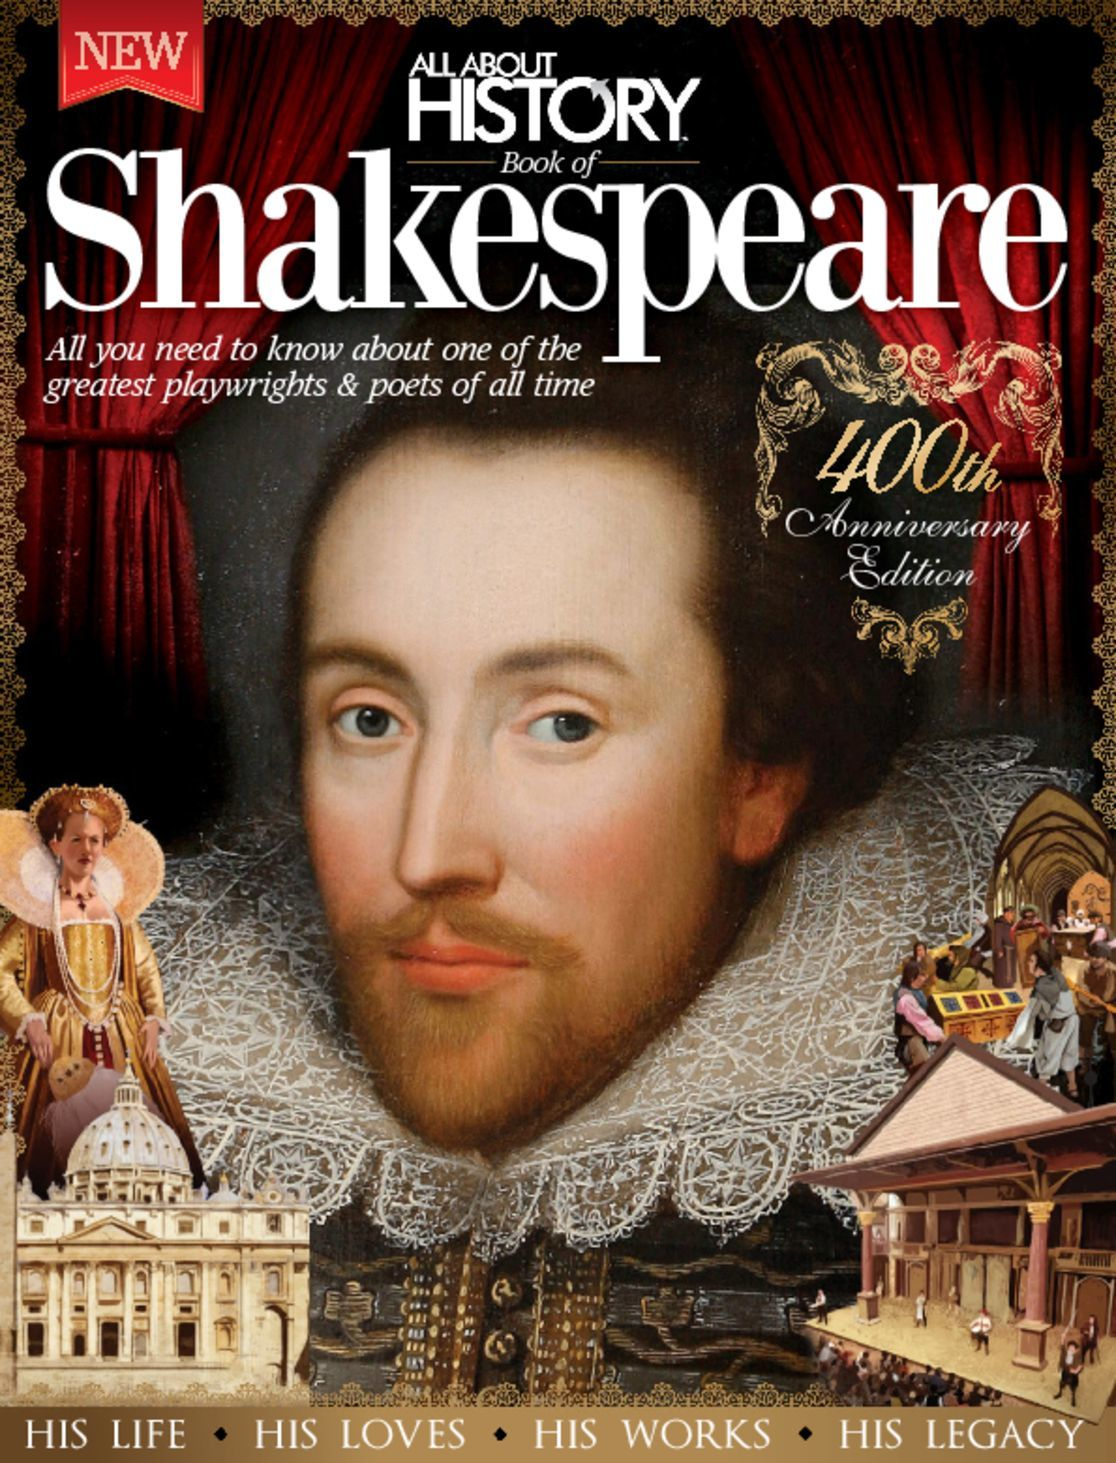 All About History Book of Shakespeare Digital